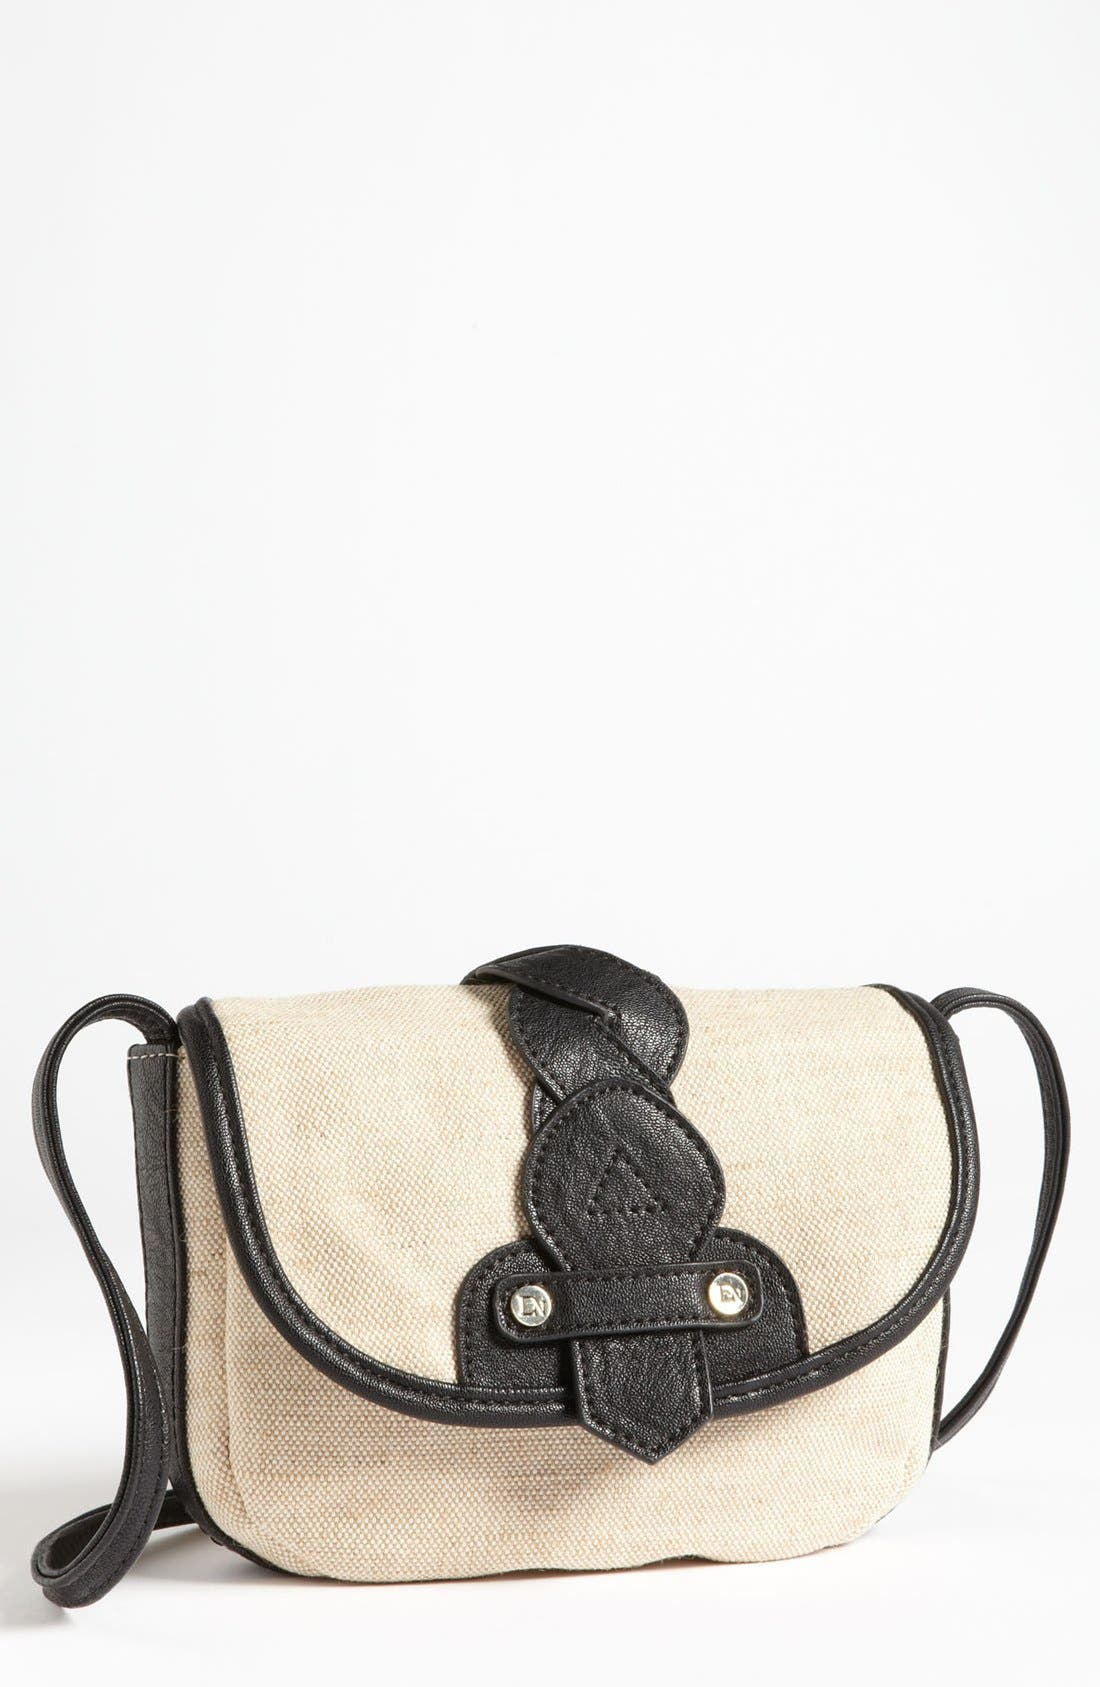 Alternate Image 1 Selected - Danielle Nicole 'Nola' Canvas Crossbody Bag